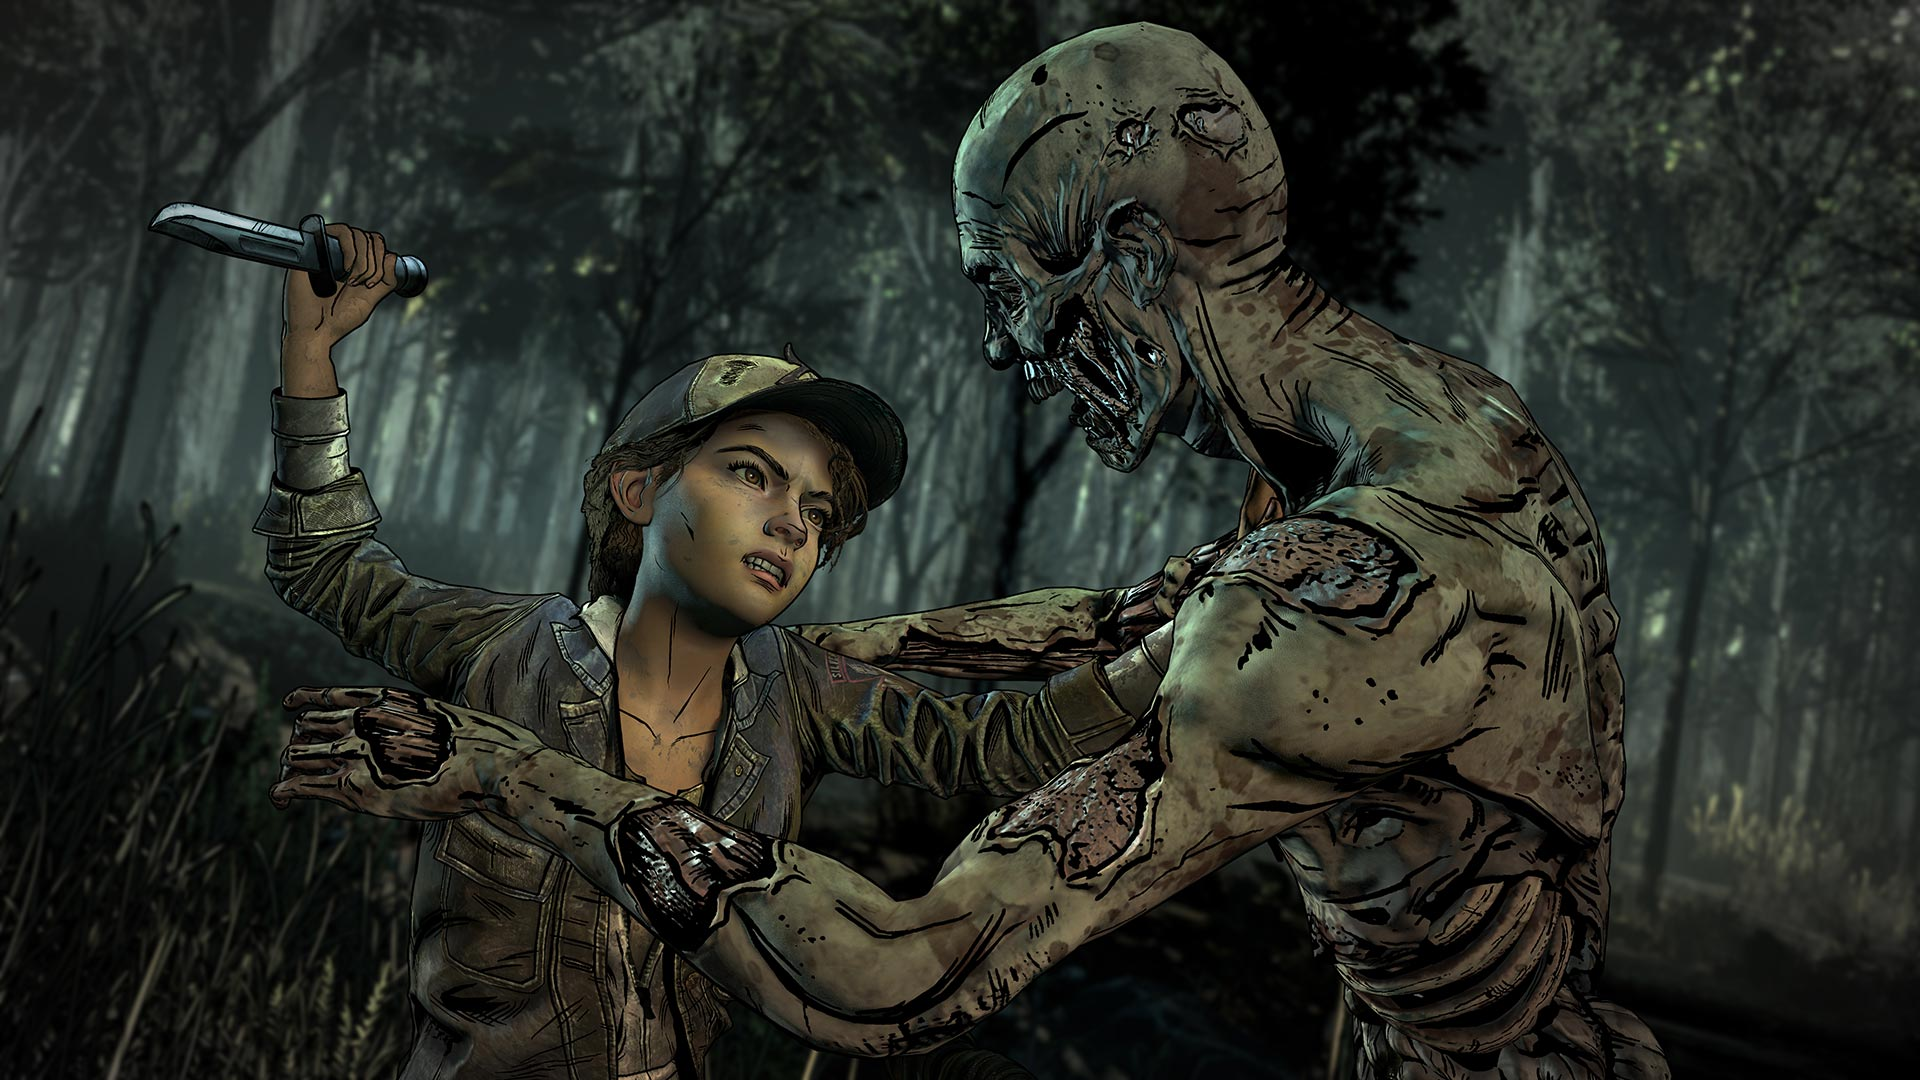 The Waking Dead: The Final Season (XO) - yes, we know they're called walkers not zombies